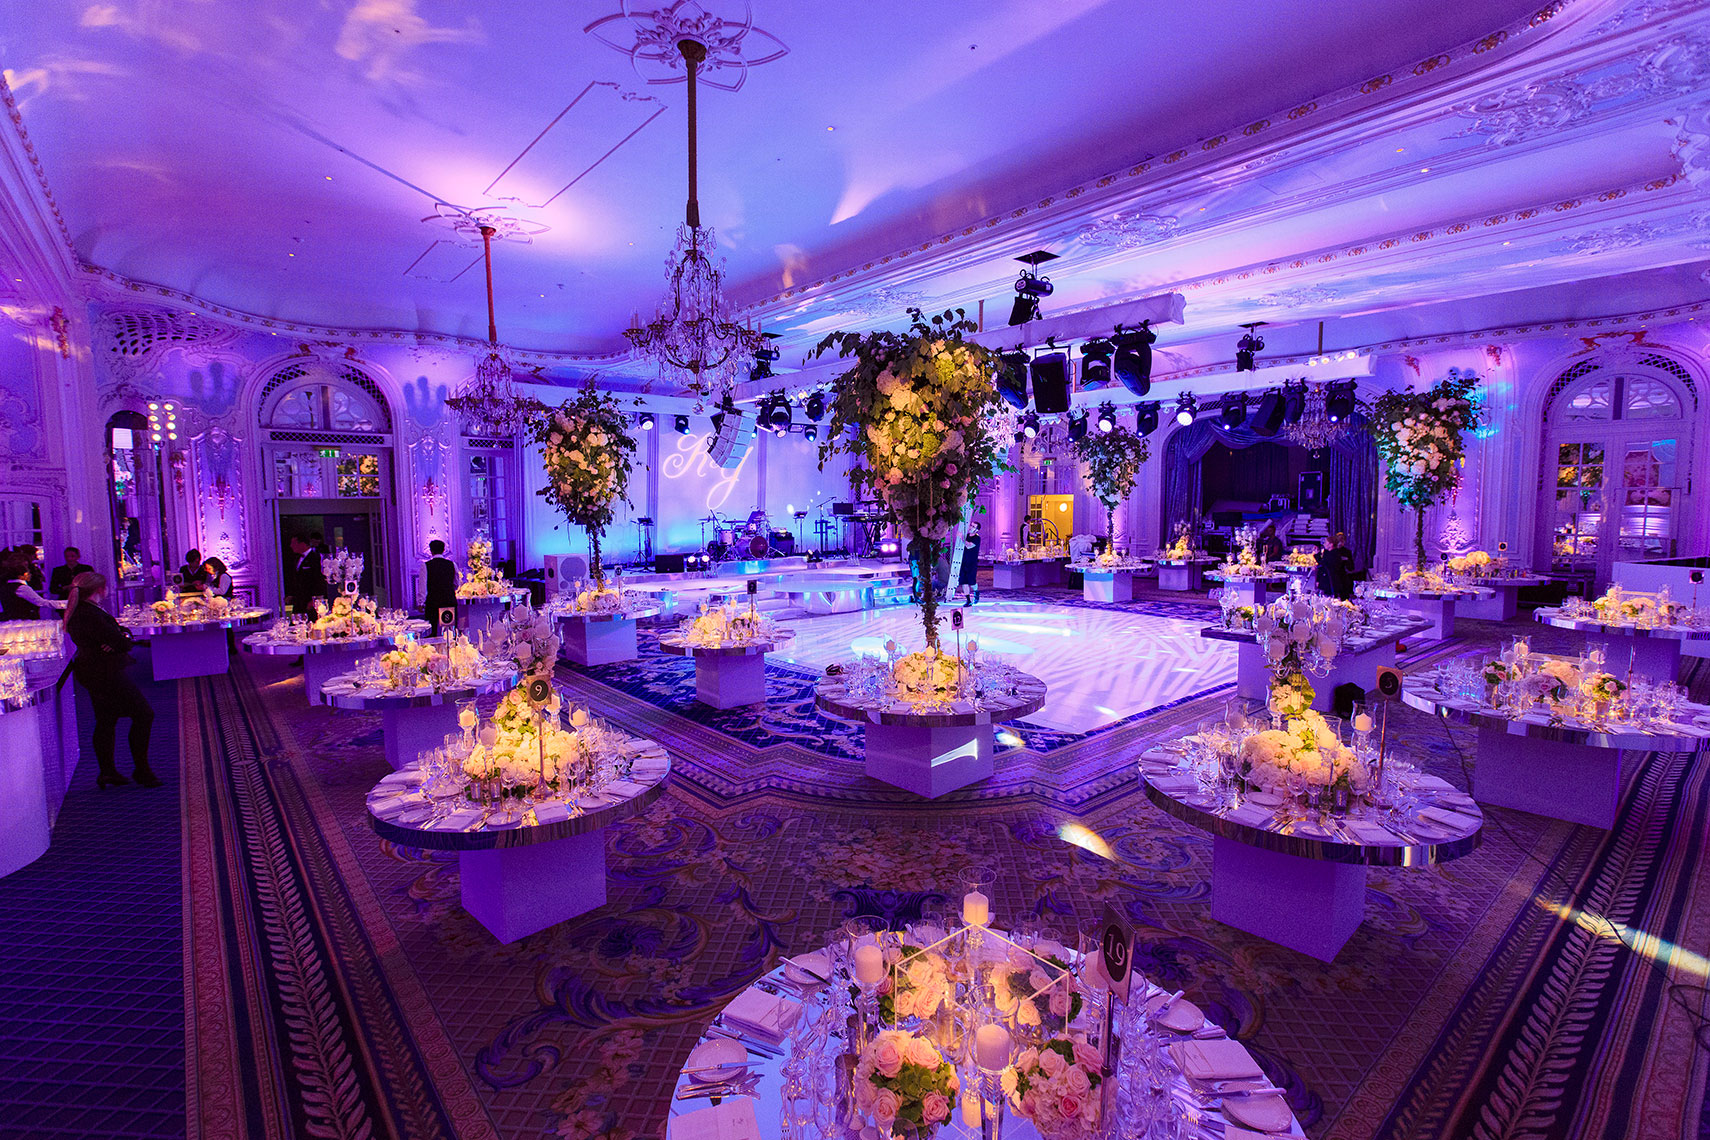 Corporate event space decorated with floral bouquets on tables featuring purple and black lighting interior